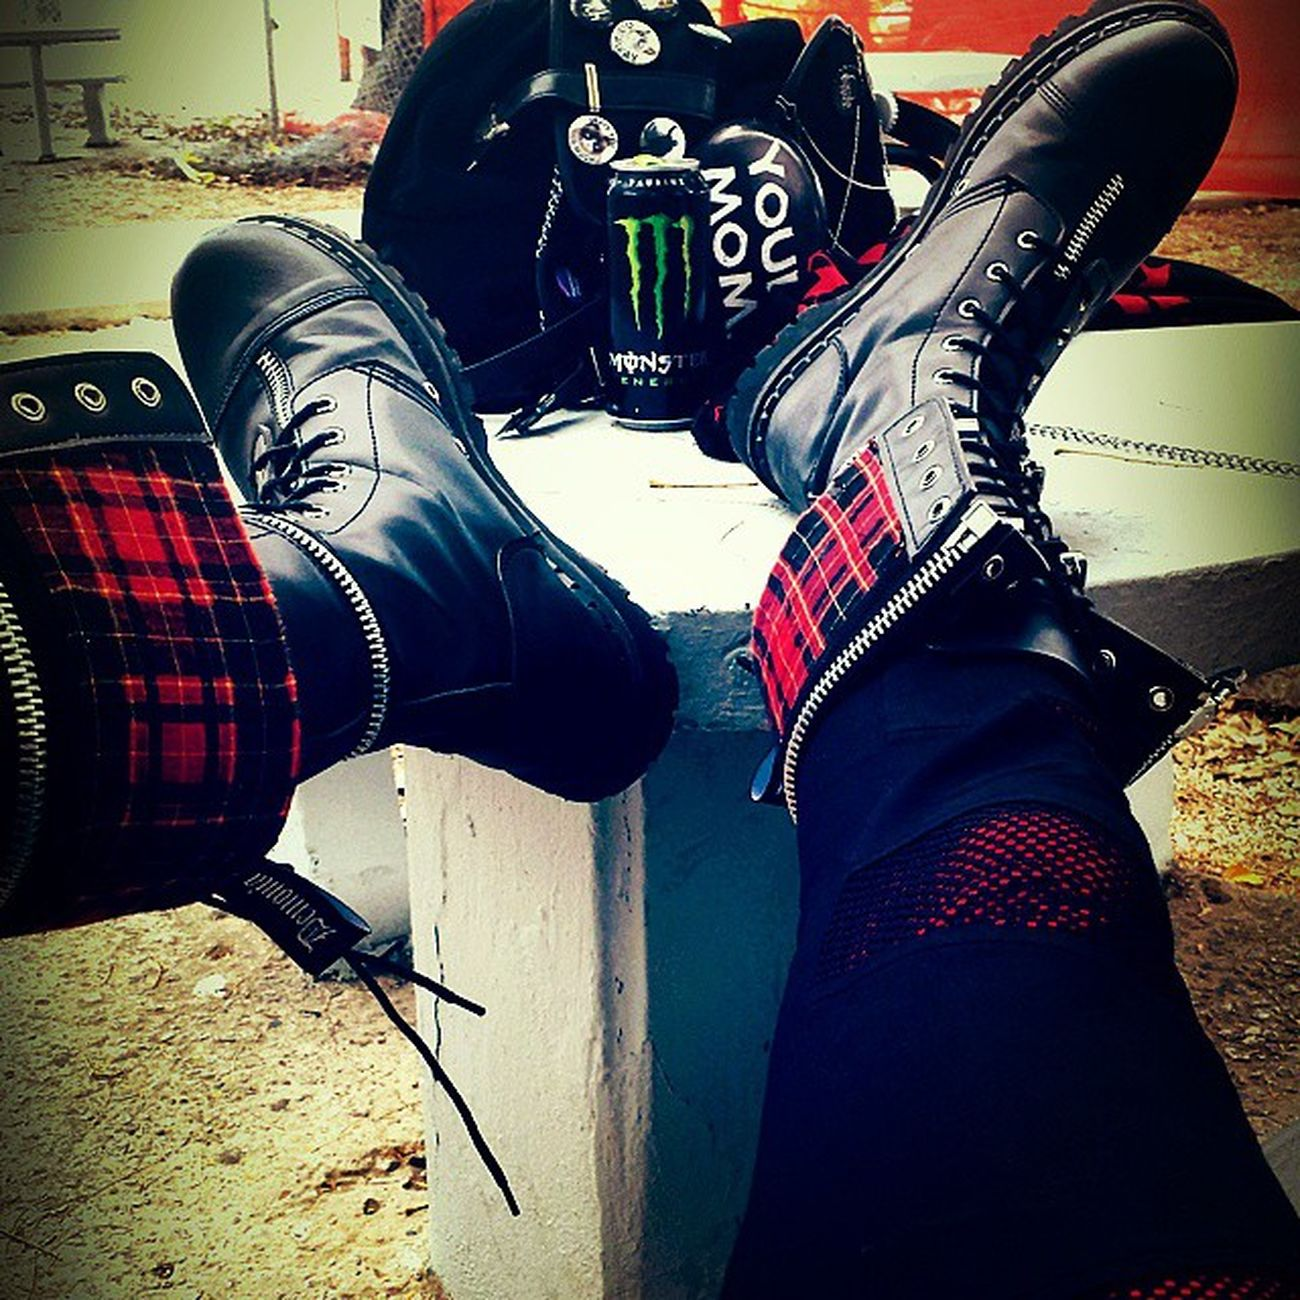 Just bought these Punk Boots Demonia Hottopic Kilt Metal Punksnotdead Custom Monster Monsterenergy Monsterenergydrinks Rock Goth